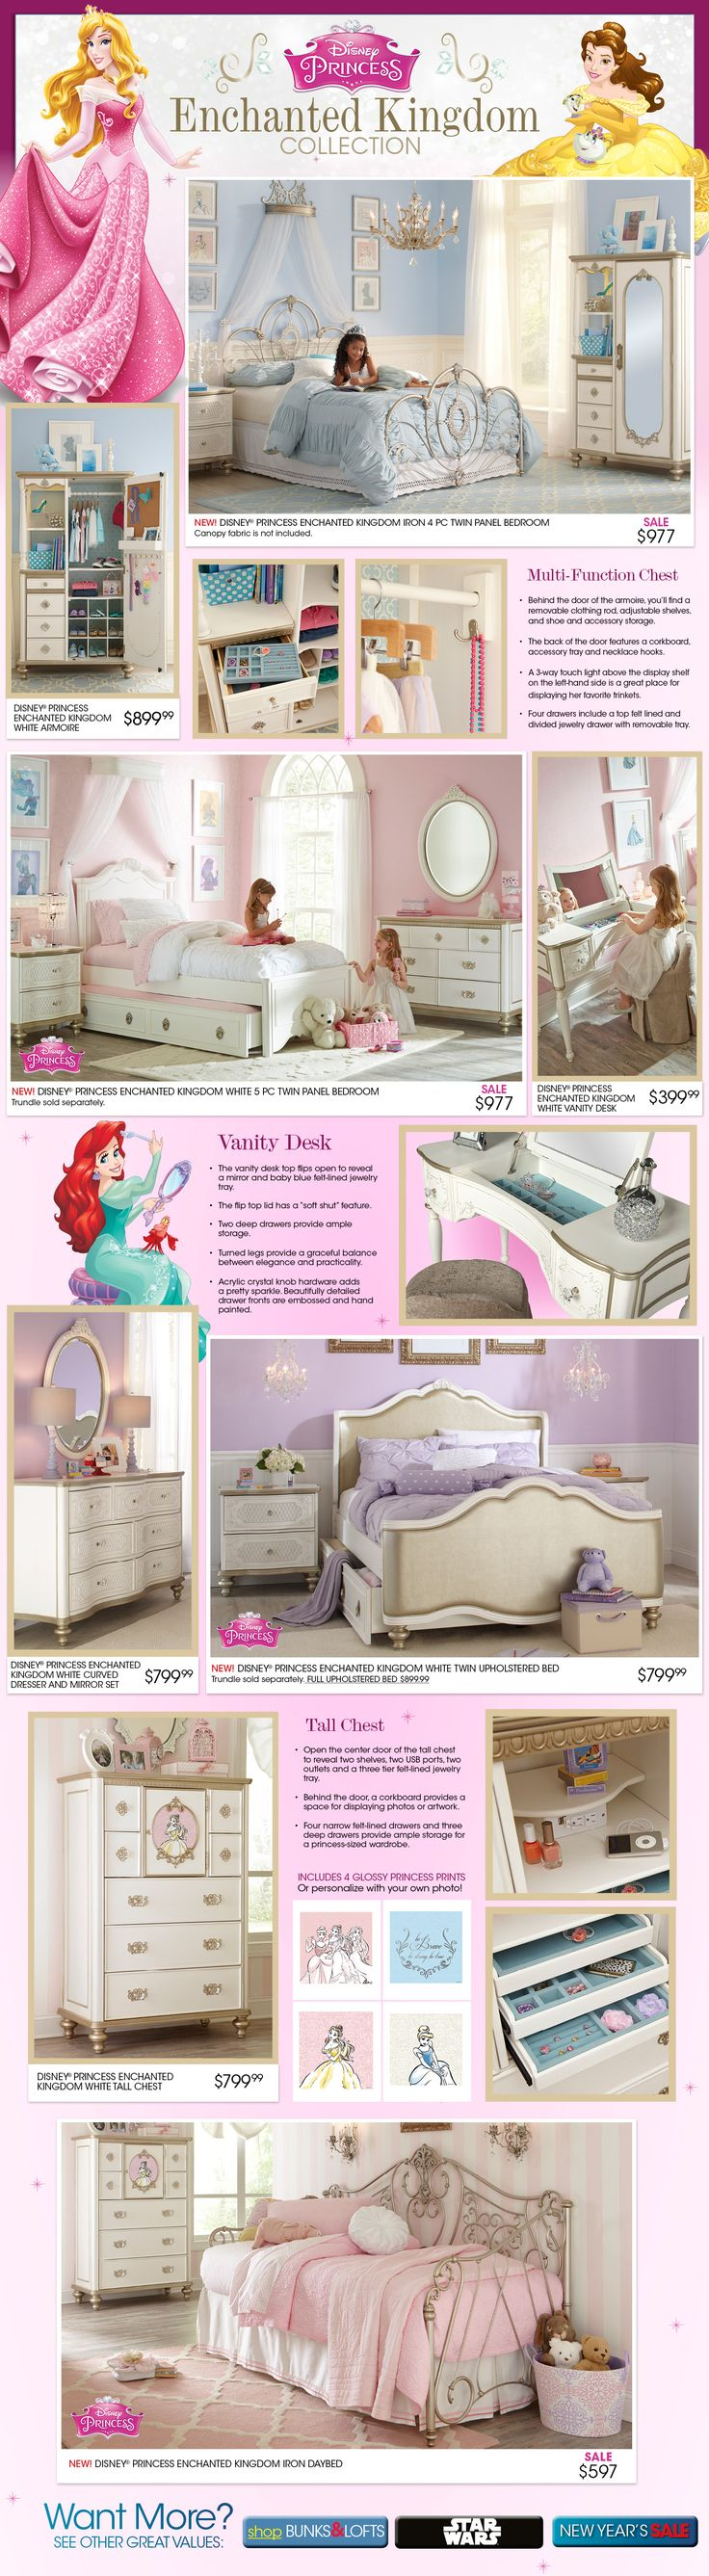 Bedroom Decor. Bedroom Furniture StoresKids ...